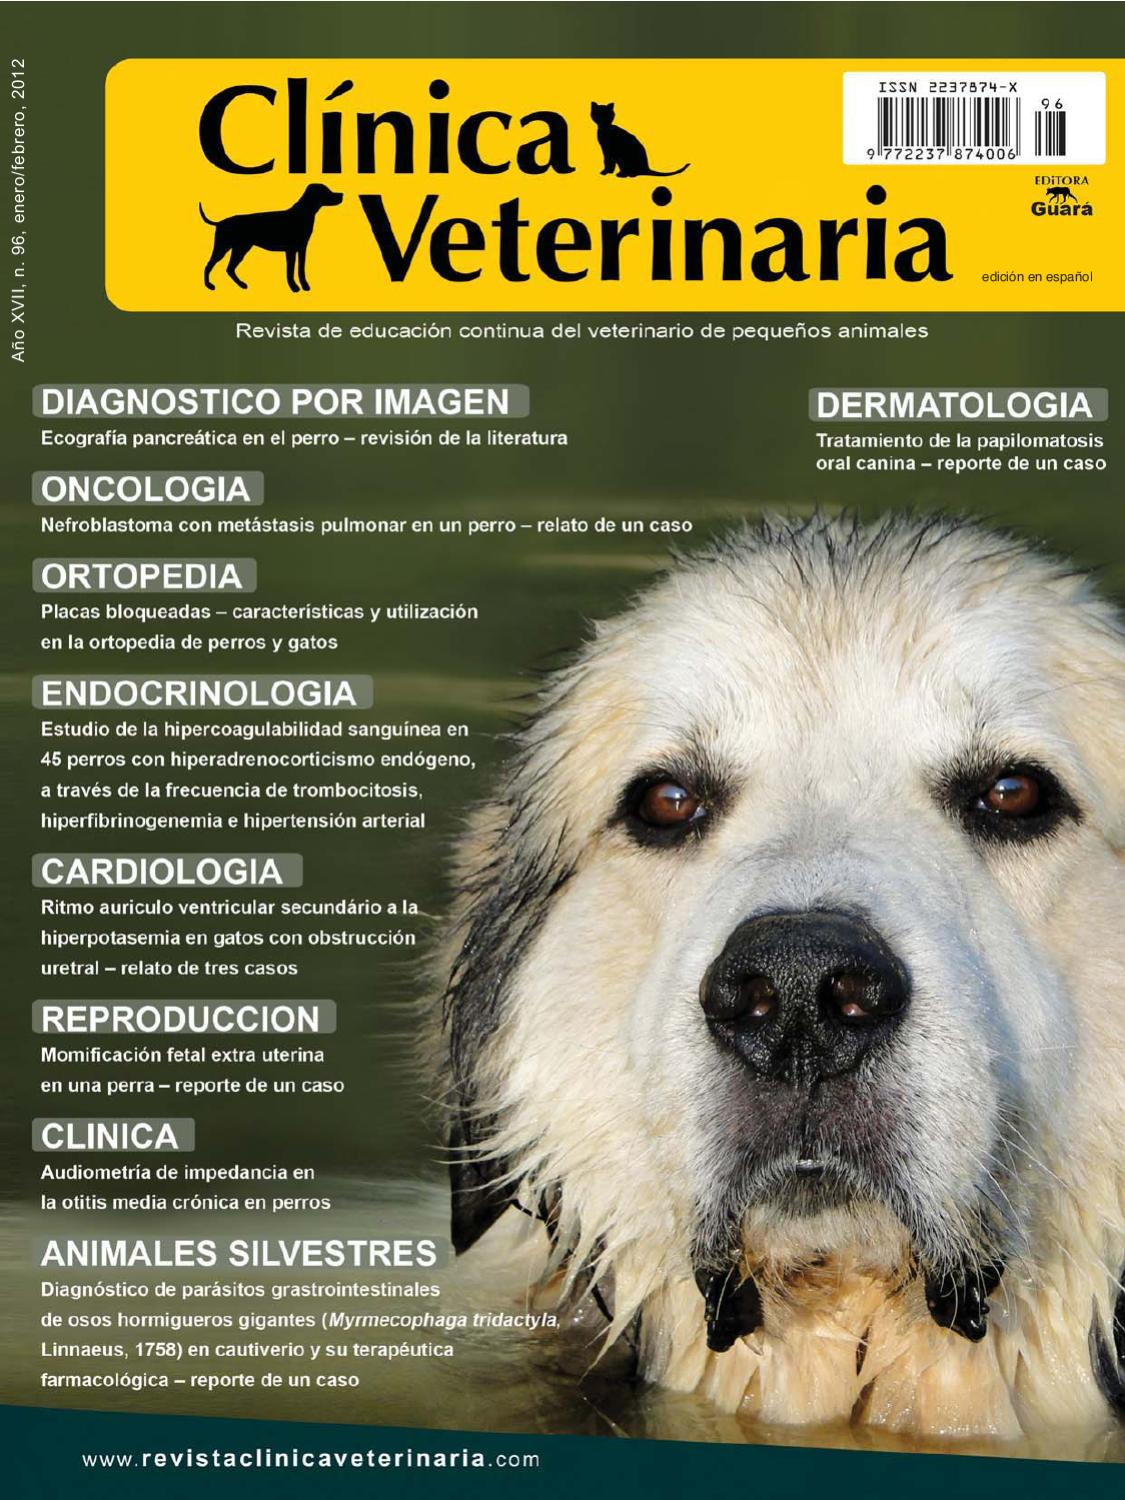 Clinica Veterinaria by Clinica Veterinaria - issuu